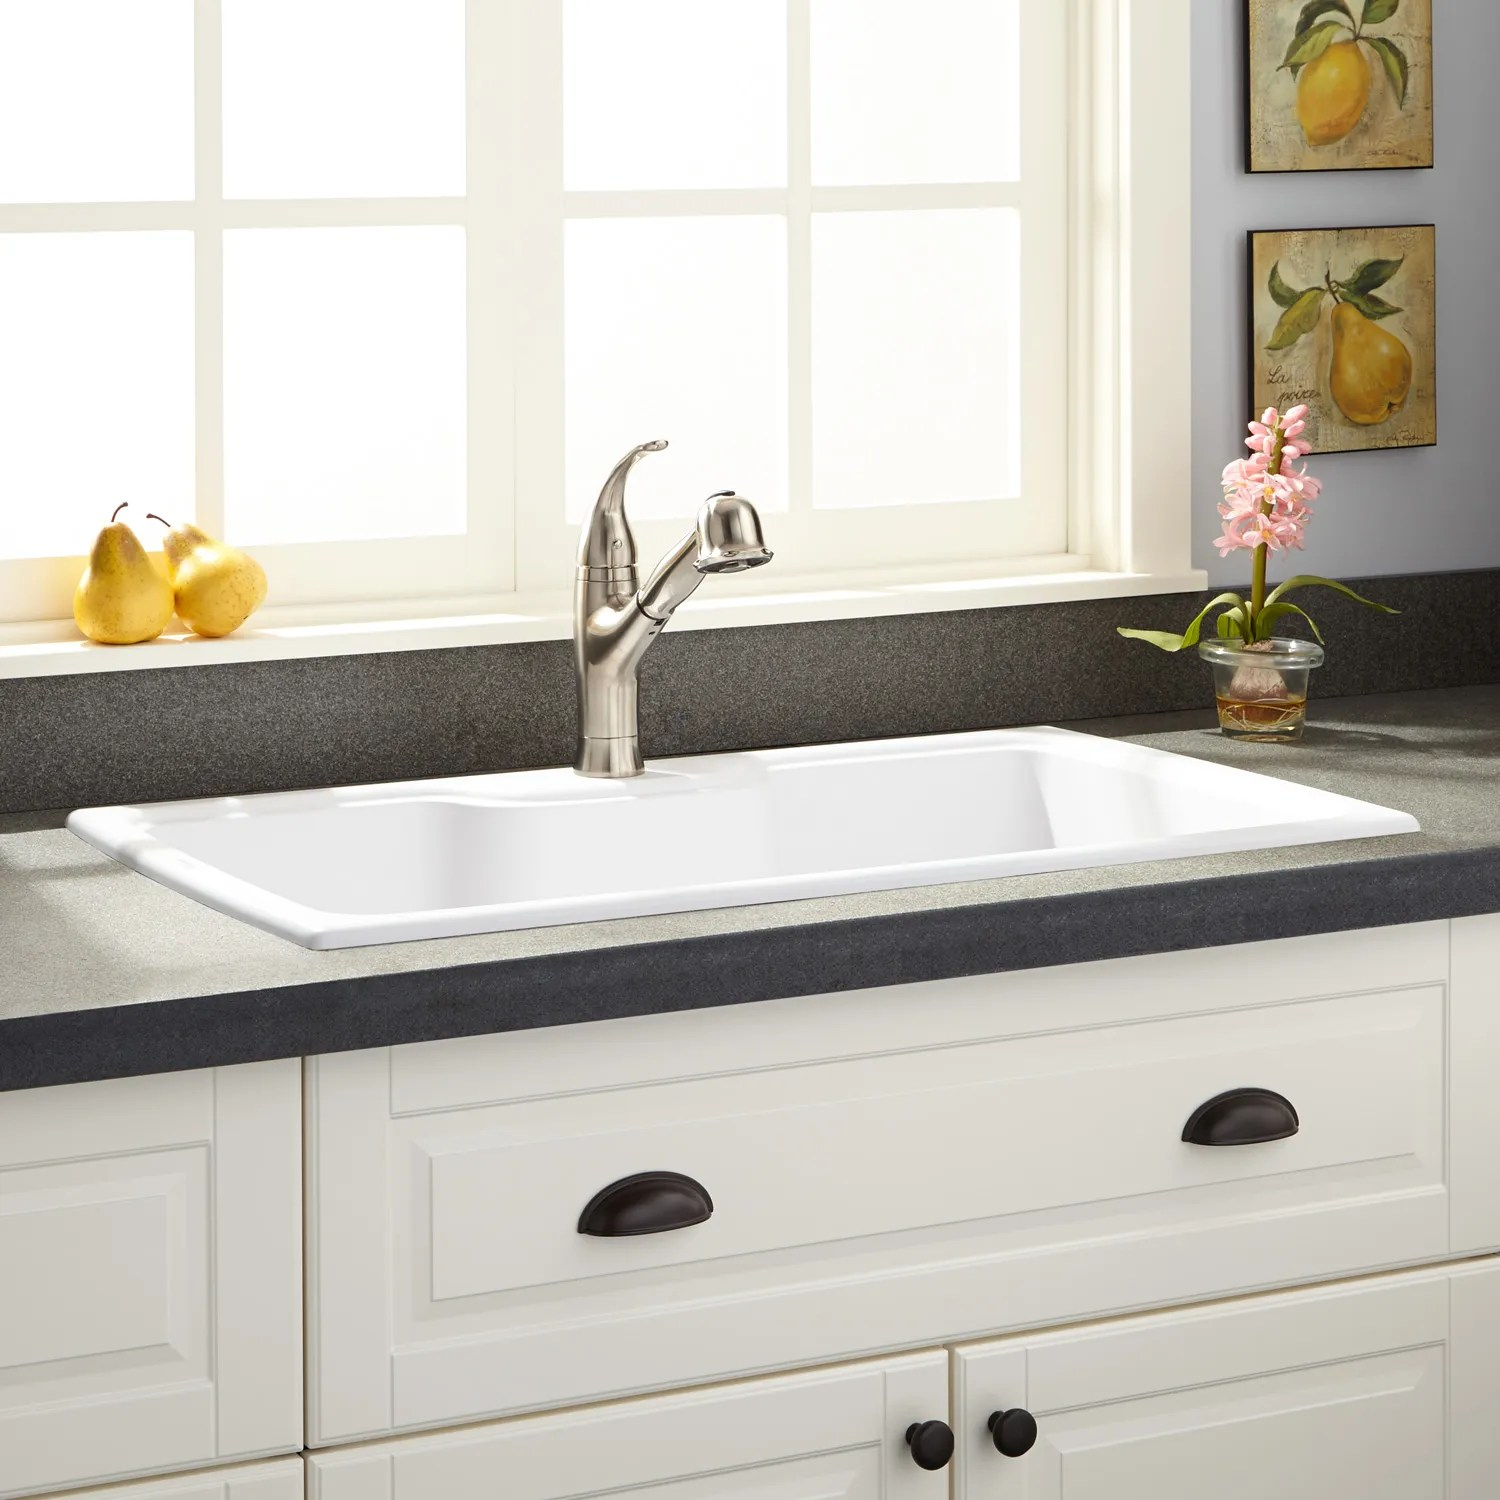 40 Nevan Fireclay Drop In Sink With Drainboard White